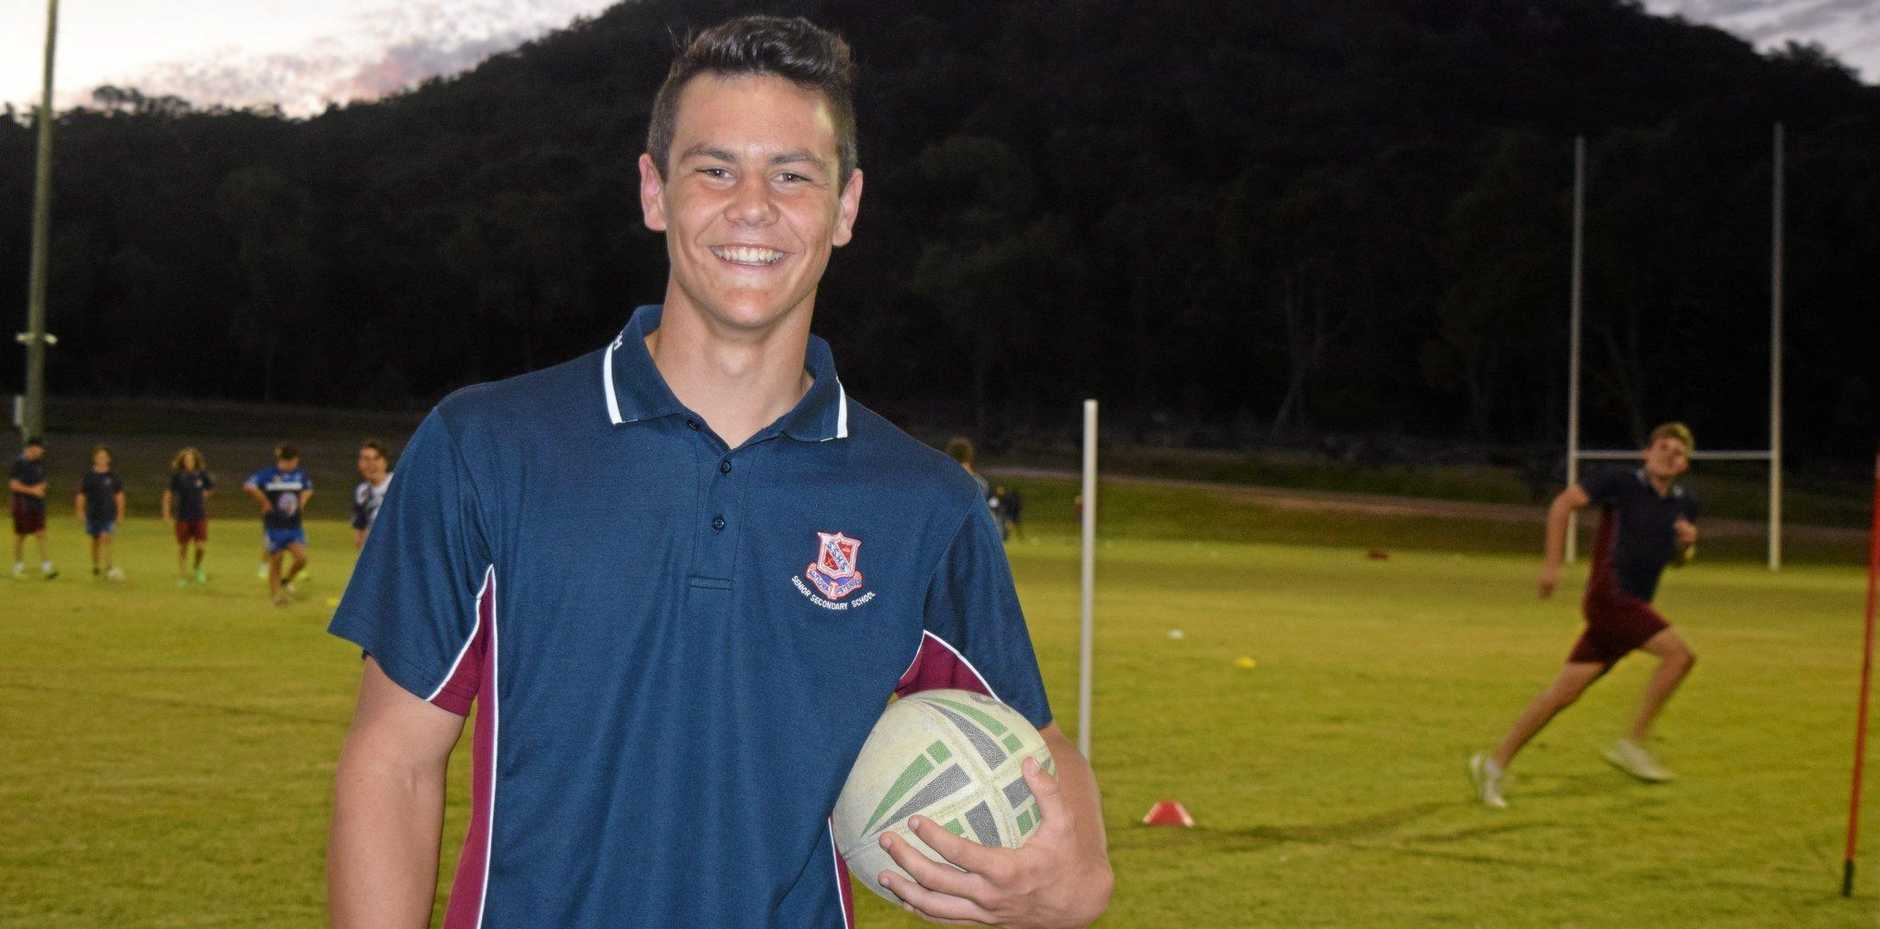 HIGH HONOUR: Matthew Murphy has become the first junior Stanthorpe Gremlin in two years to be selected in the South West Mustangs team.